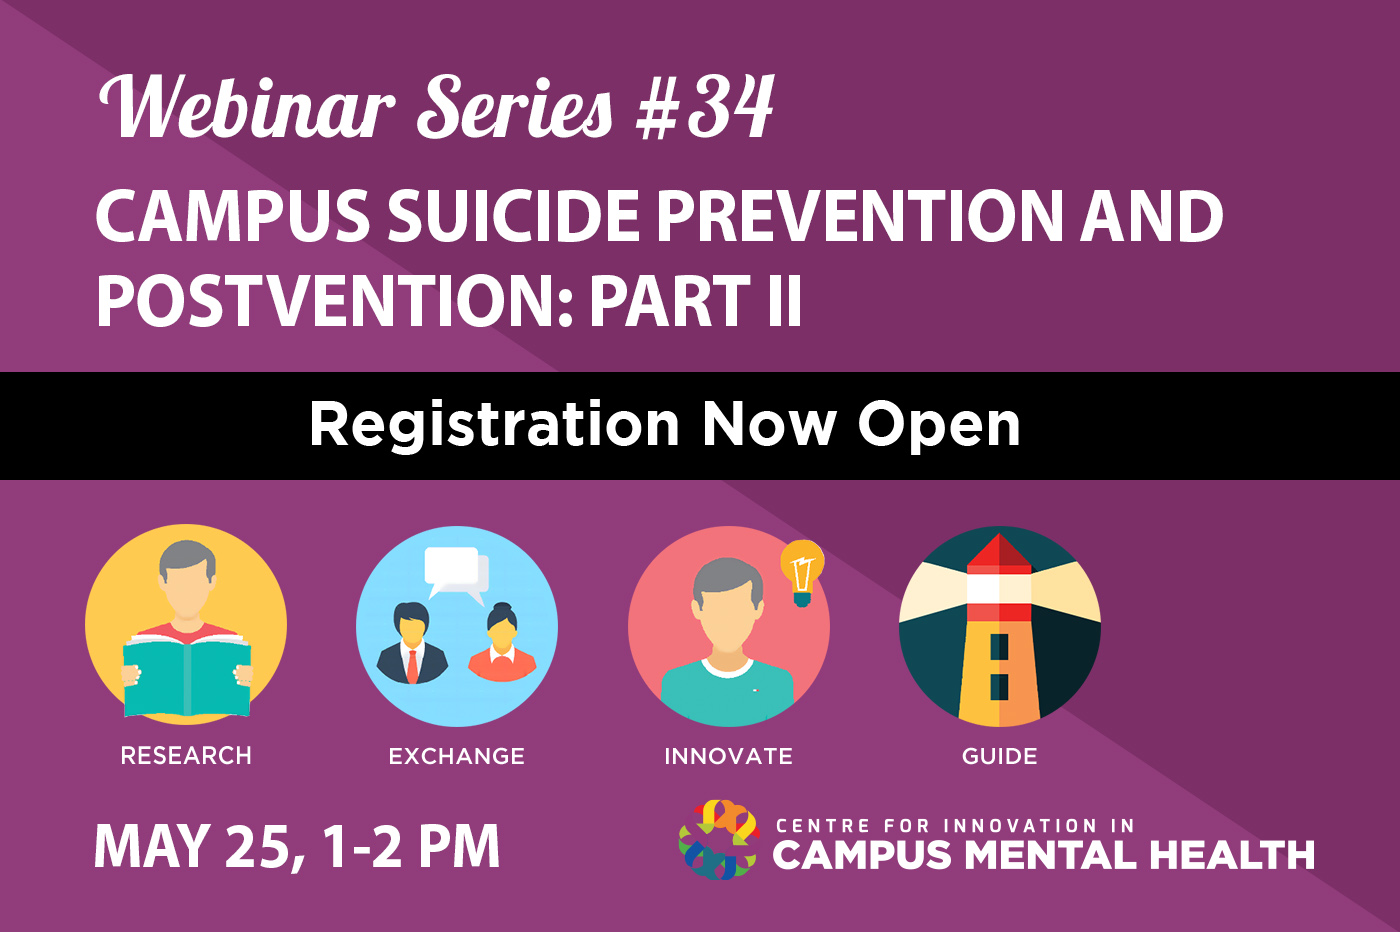 Campus Suicide Prevention and Postvention, Part II - Centre for